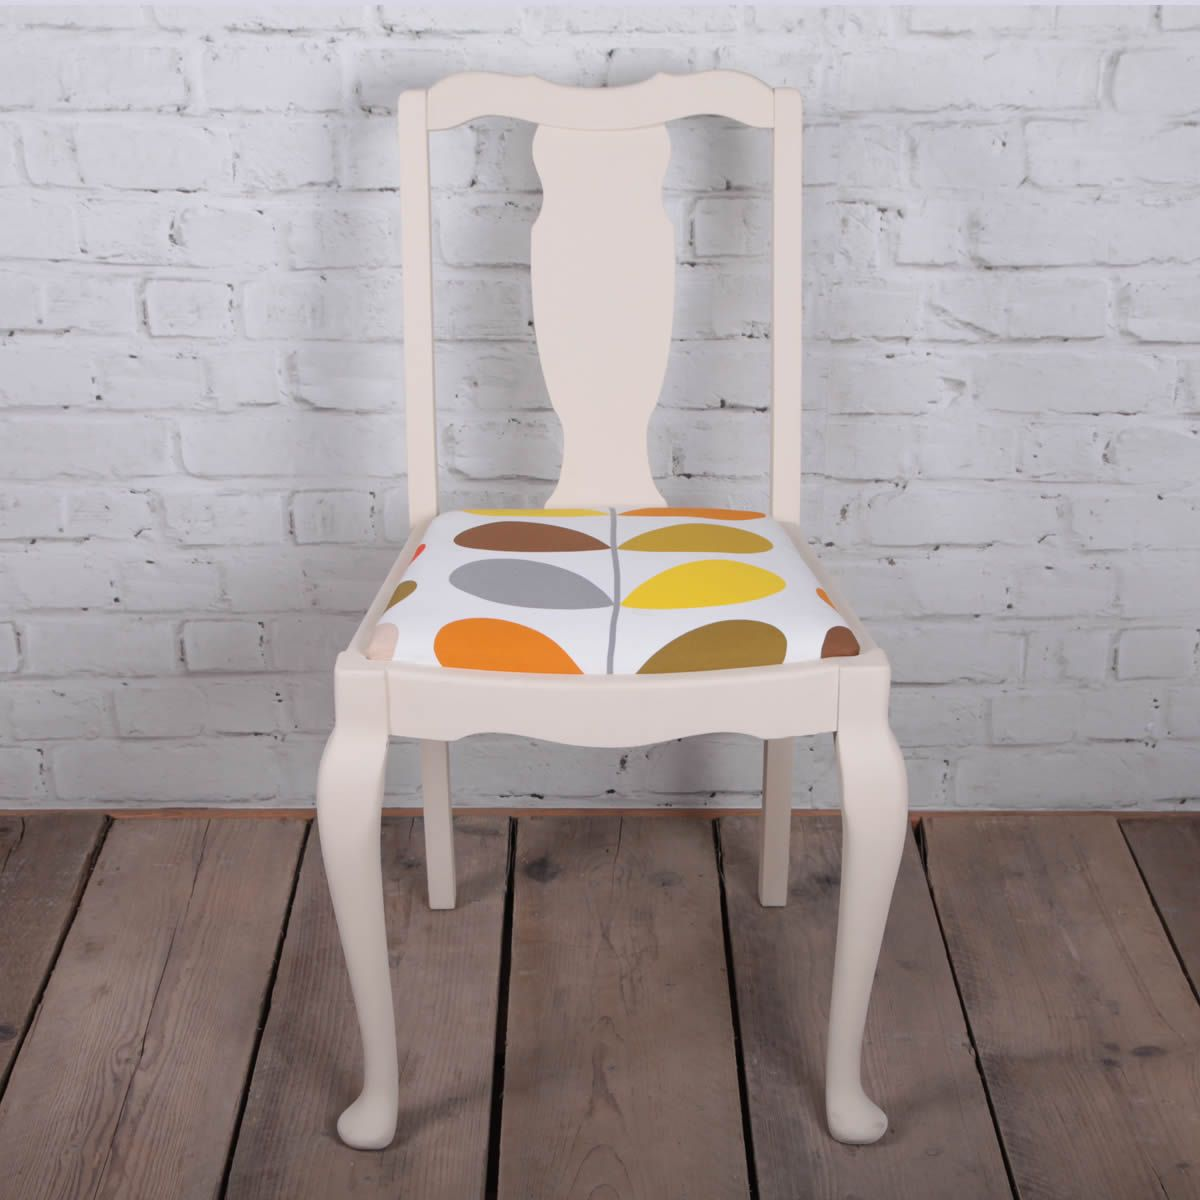 This Is An Original Ercol Dining Chair That Has Been Hand Painted Simple Second Hand Ercol Dining Room Furniture Inspiration Design